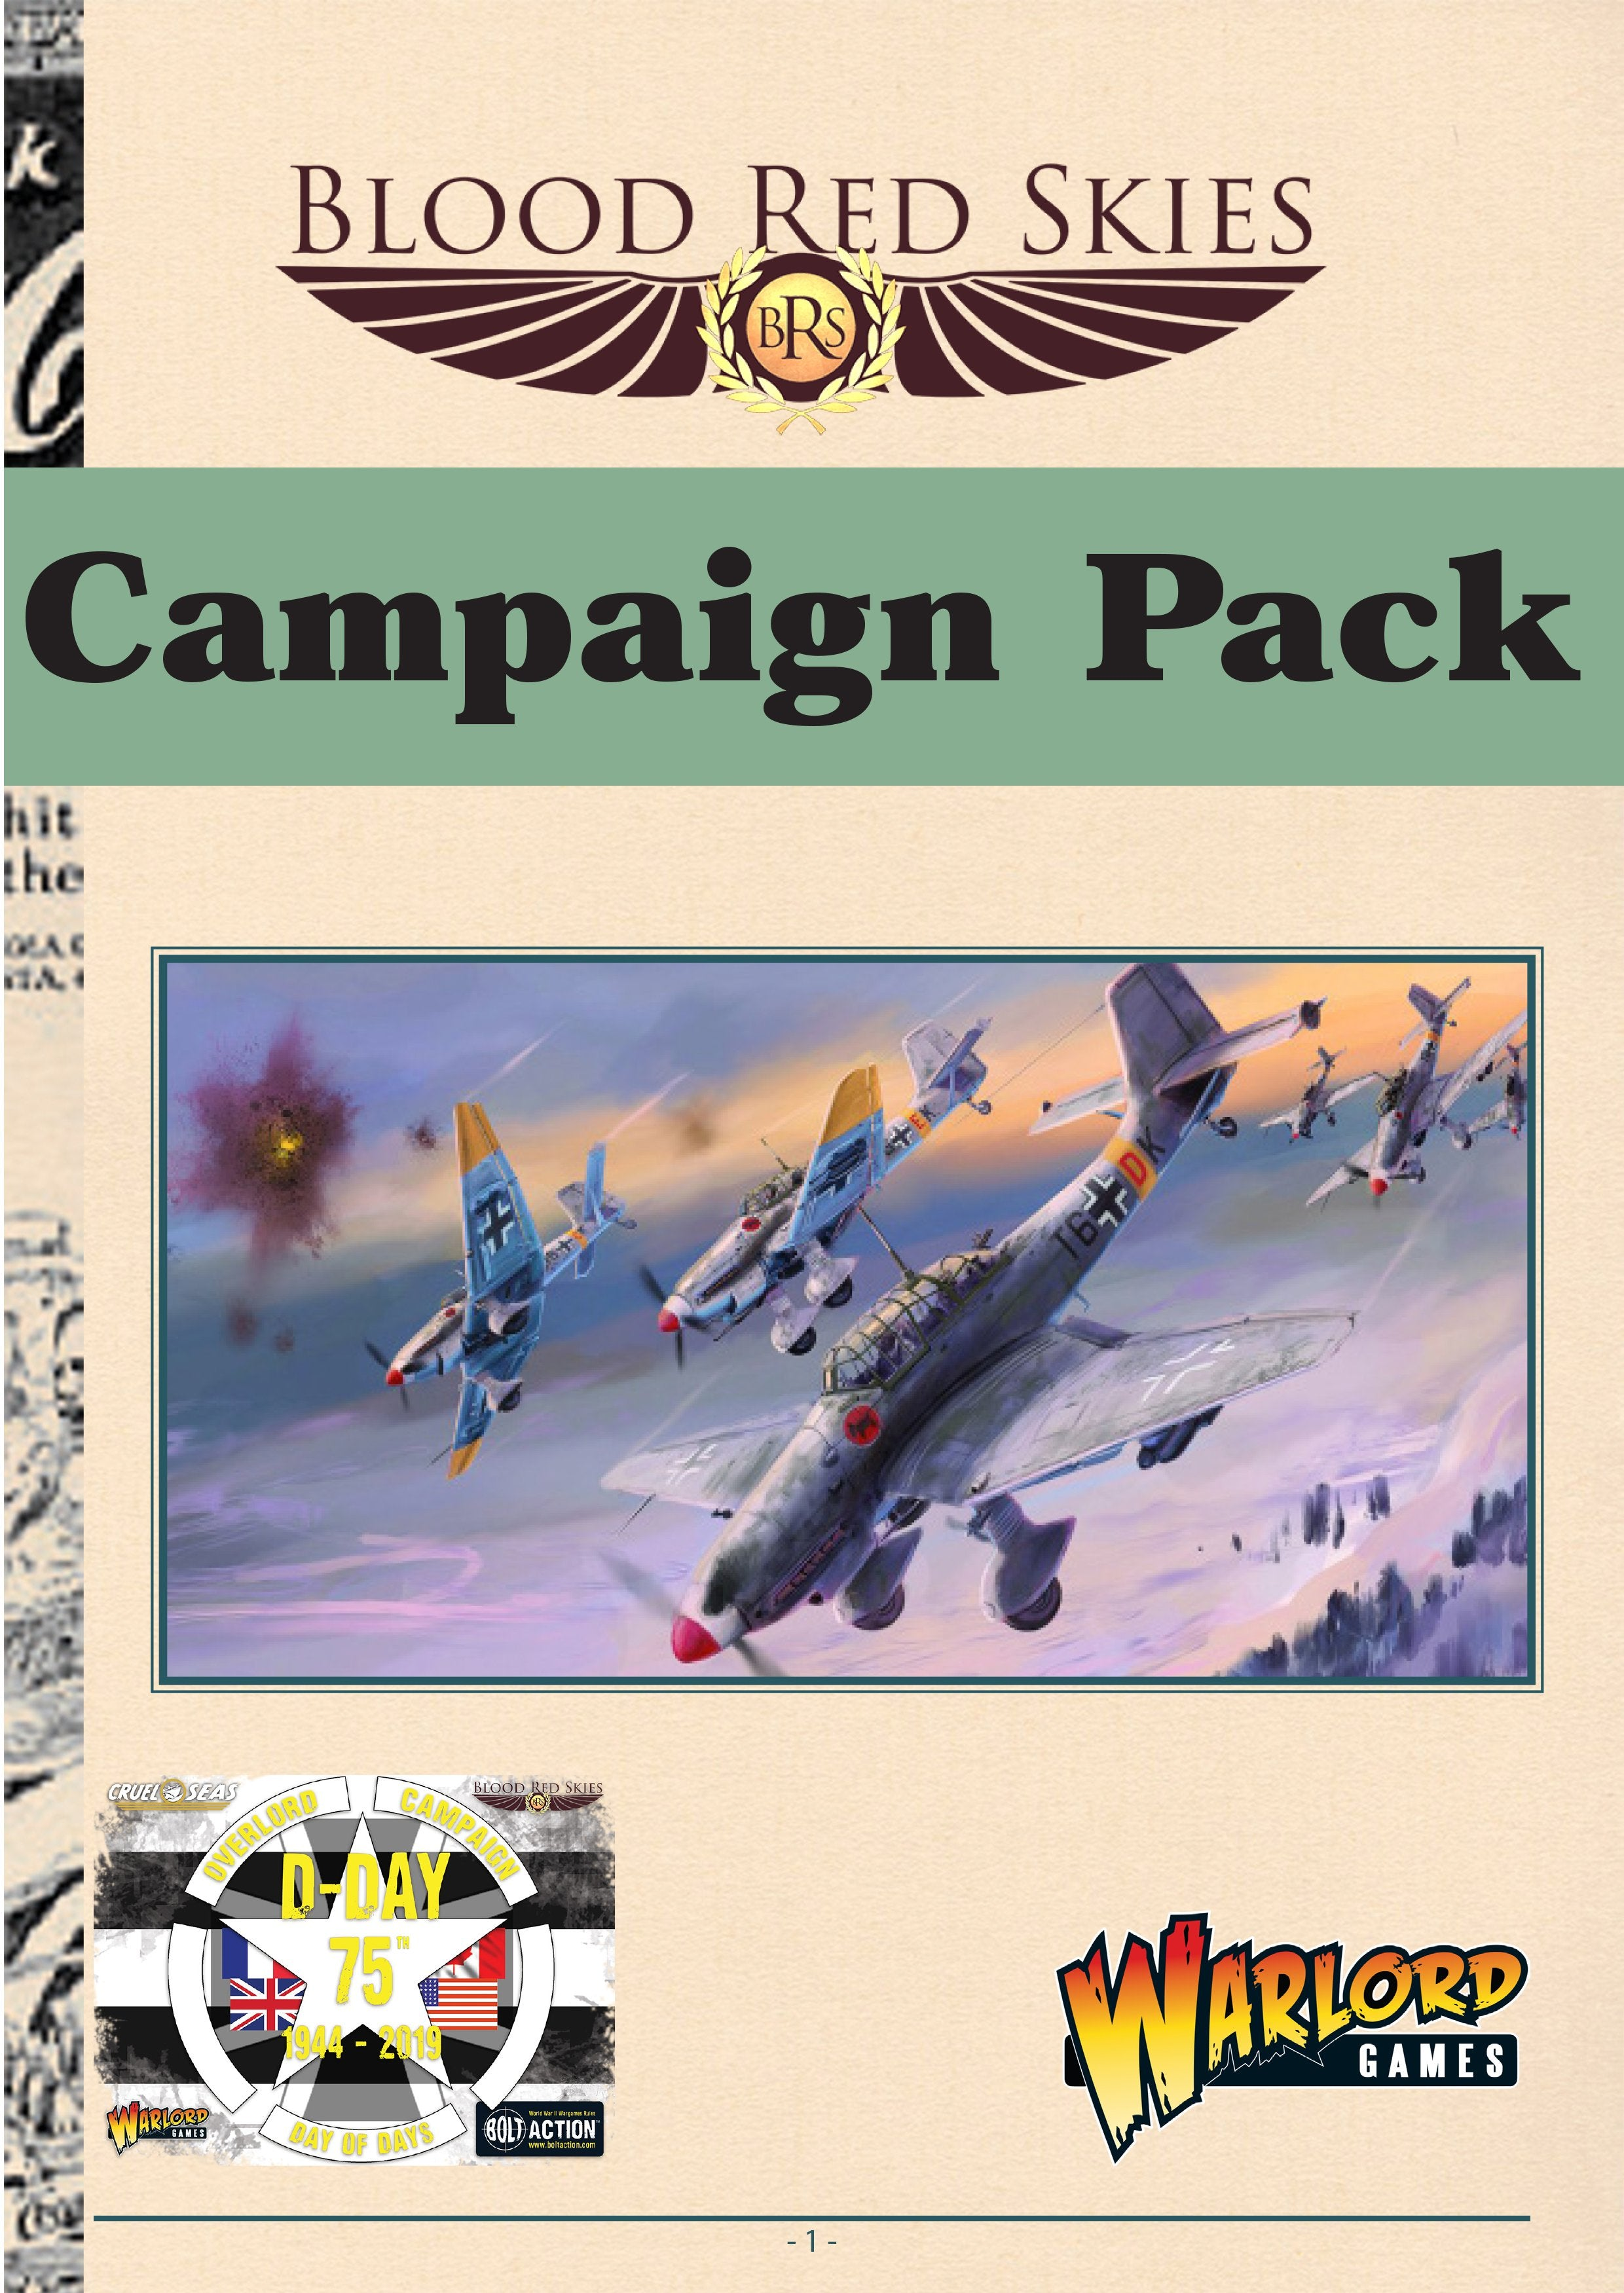 75th D-Day anniversary Campaign Pack - Blood Red Skies PDF